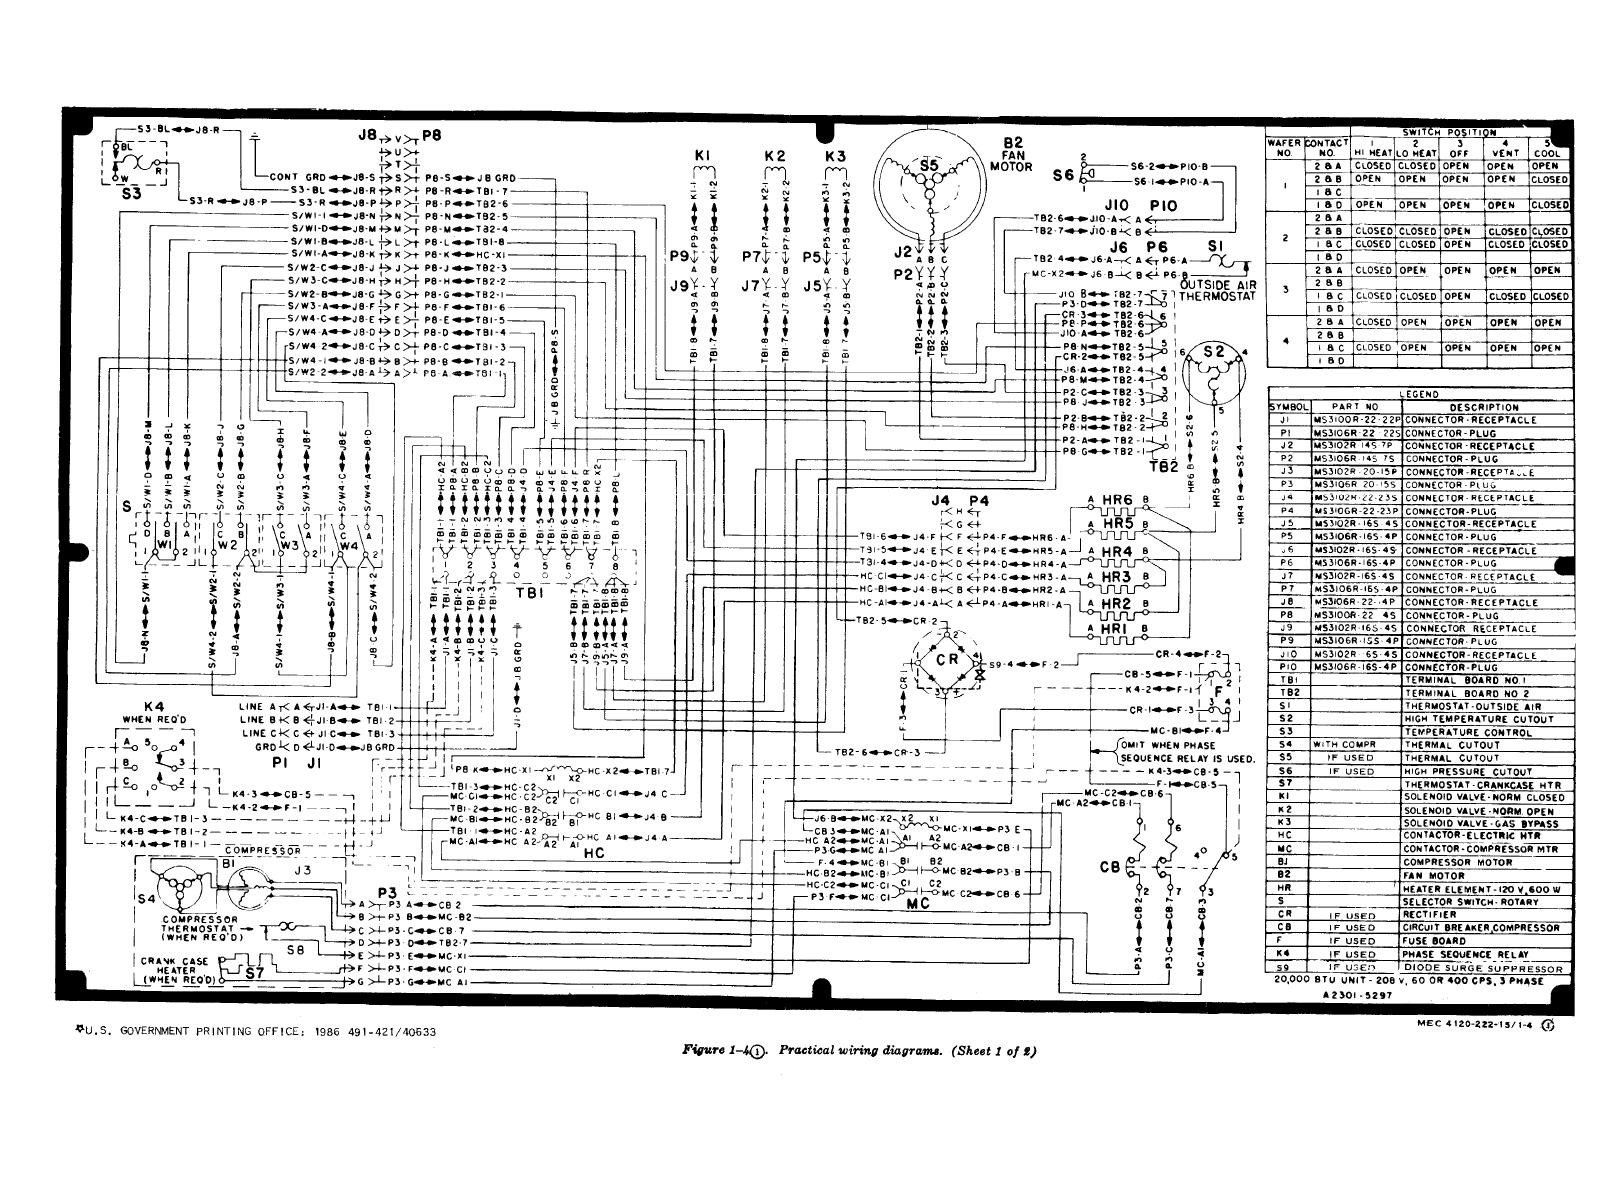 medium resolution of trane schematics diagrams wiring diagram today trane schematics diagrams